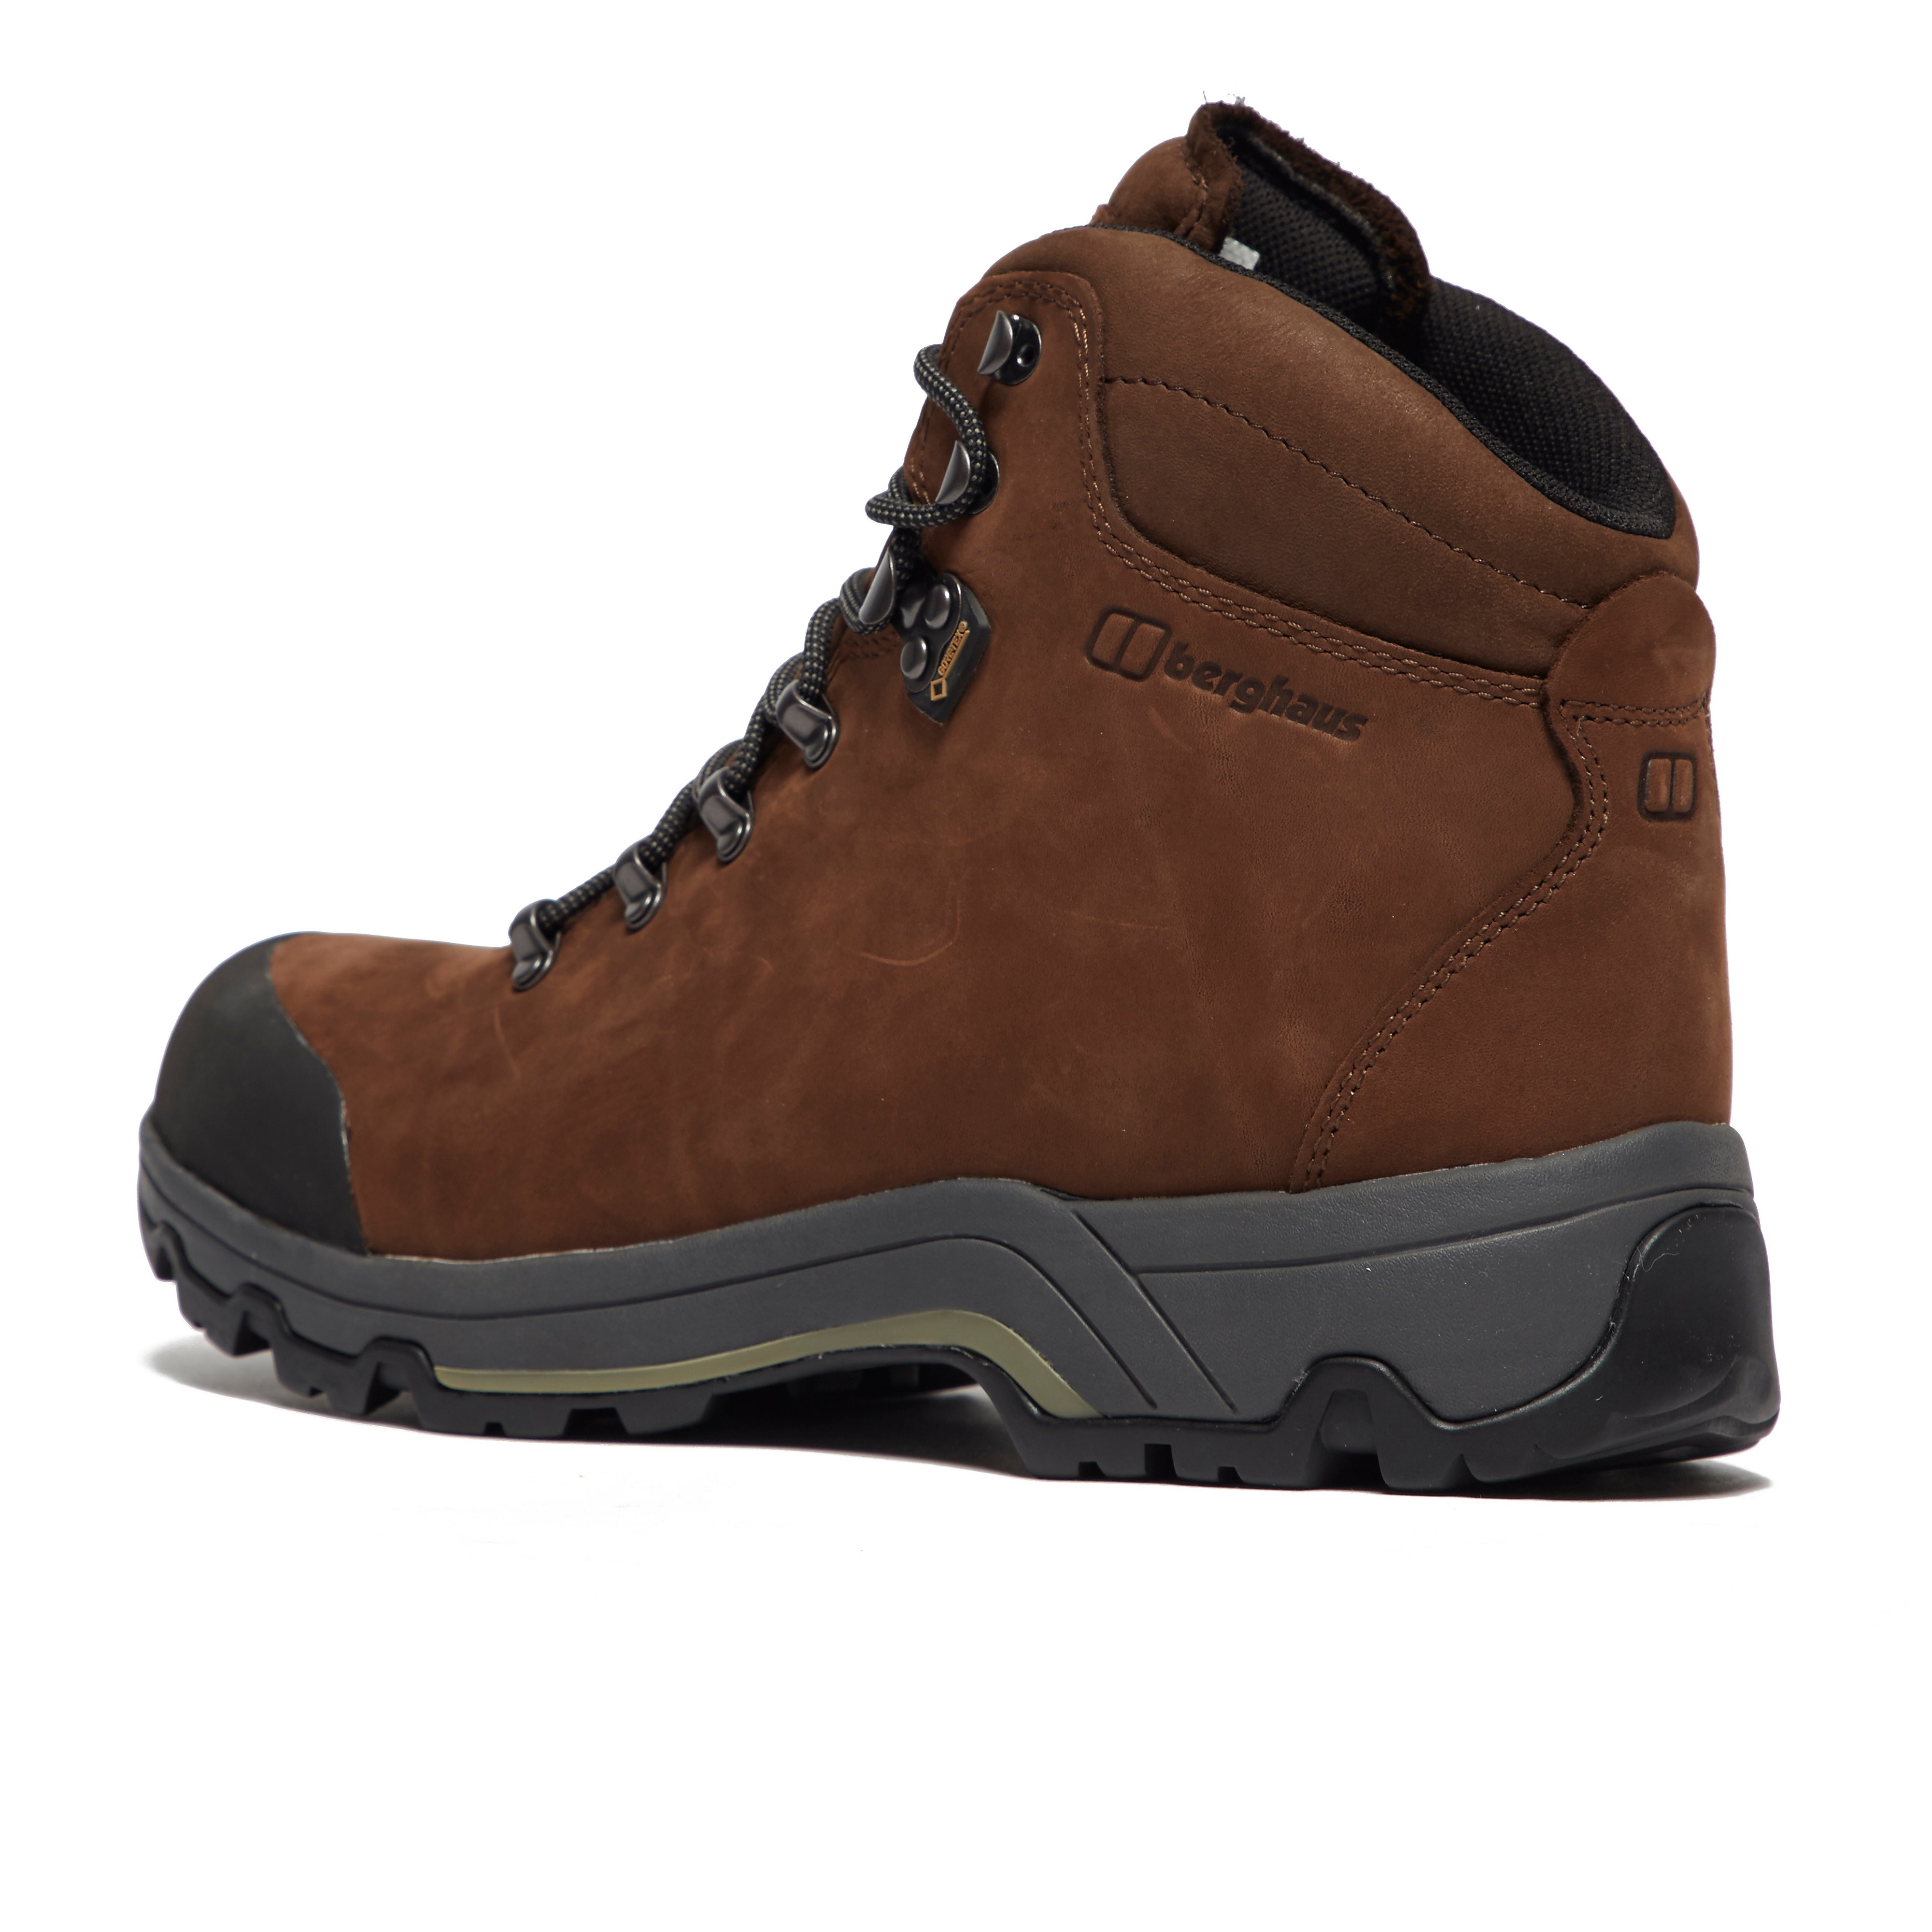 BERGHAUS Fellmaster GTX® Men's Walking Boots